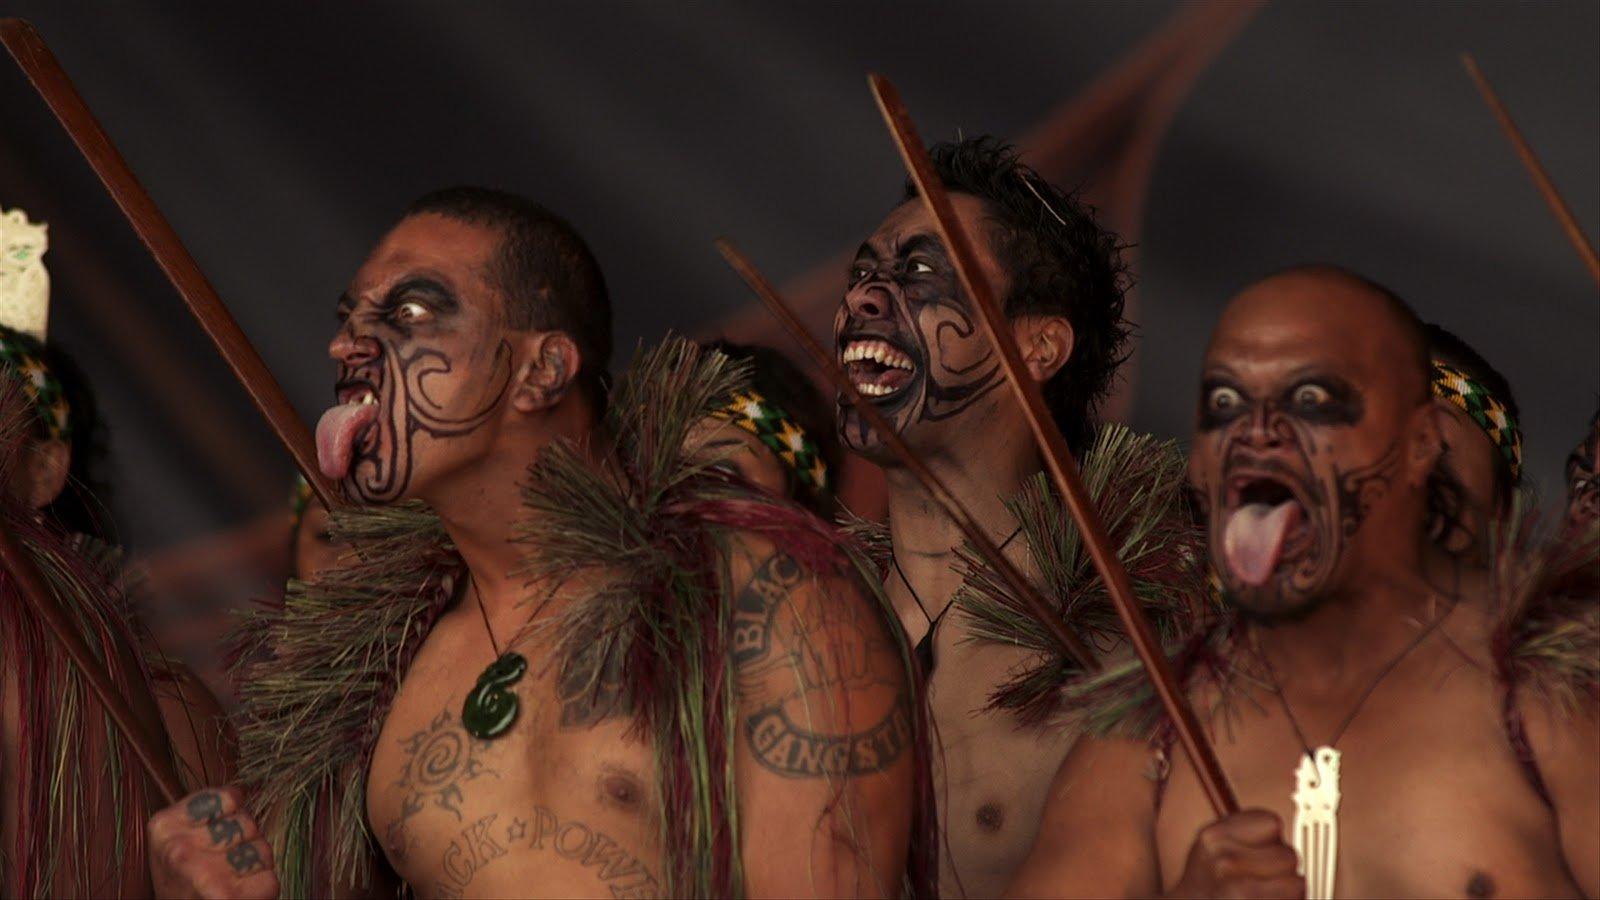 a look at the maori people of new zealand Maori masks of new zealand the maori people made their masks based on the ta mokos the masks don't all look human-some look like animals.